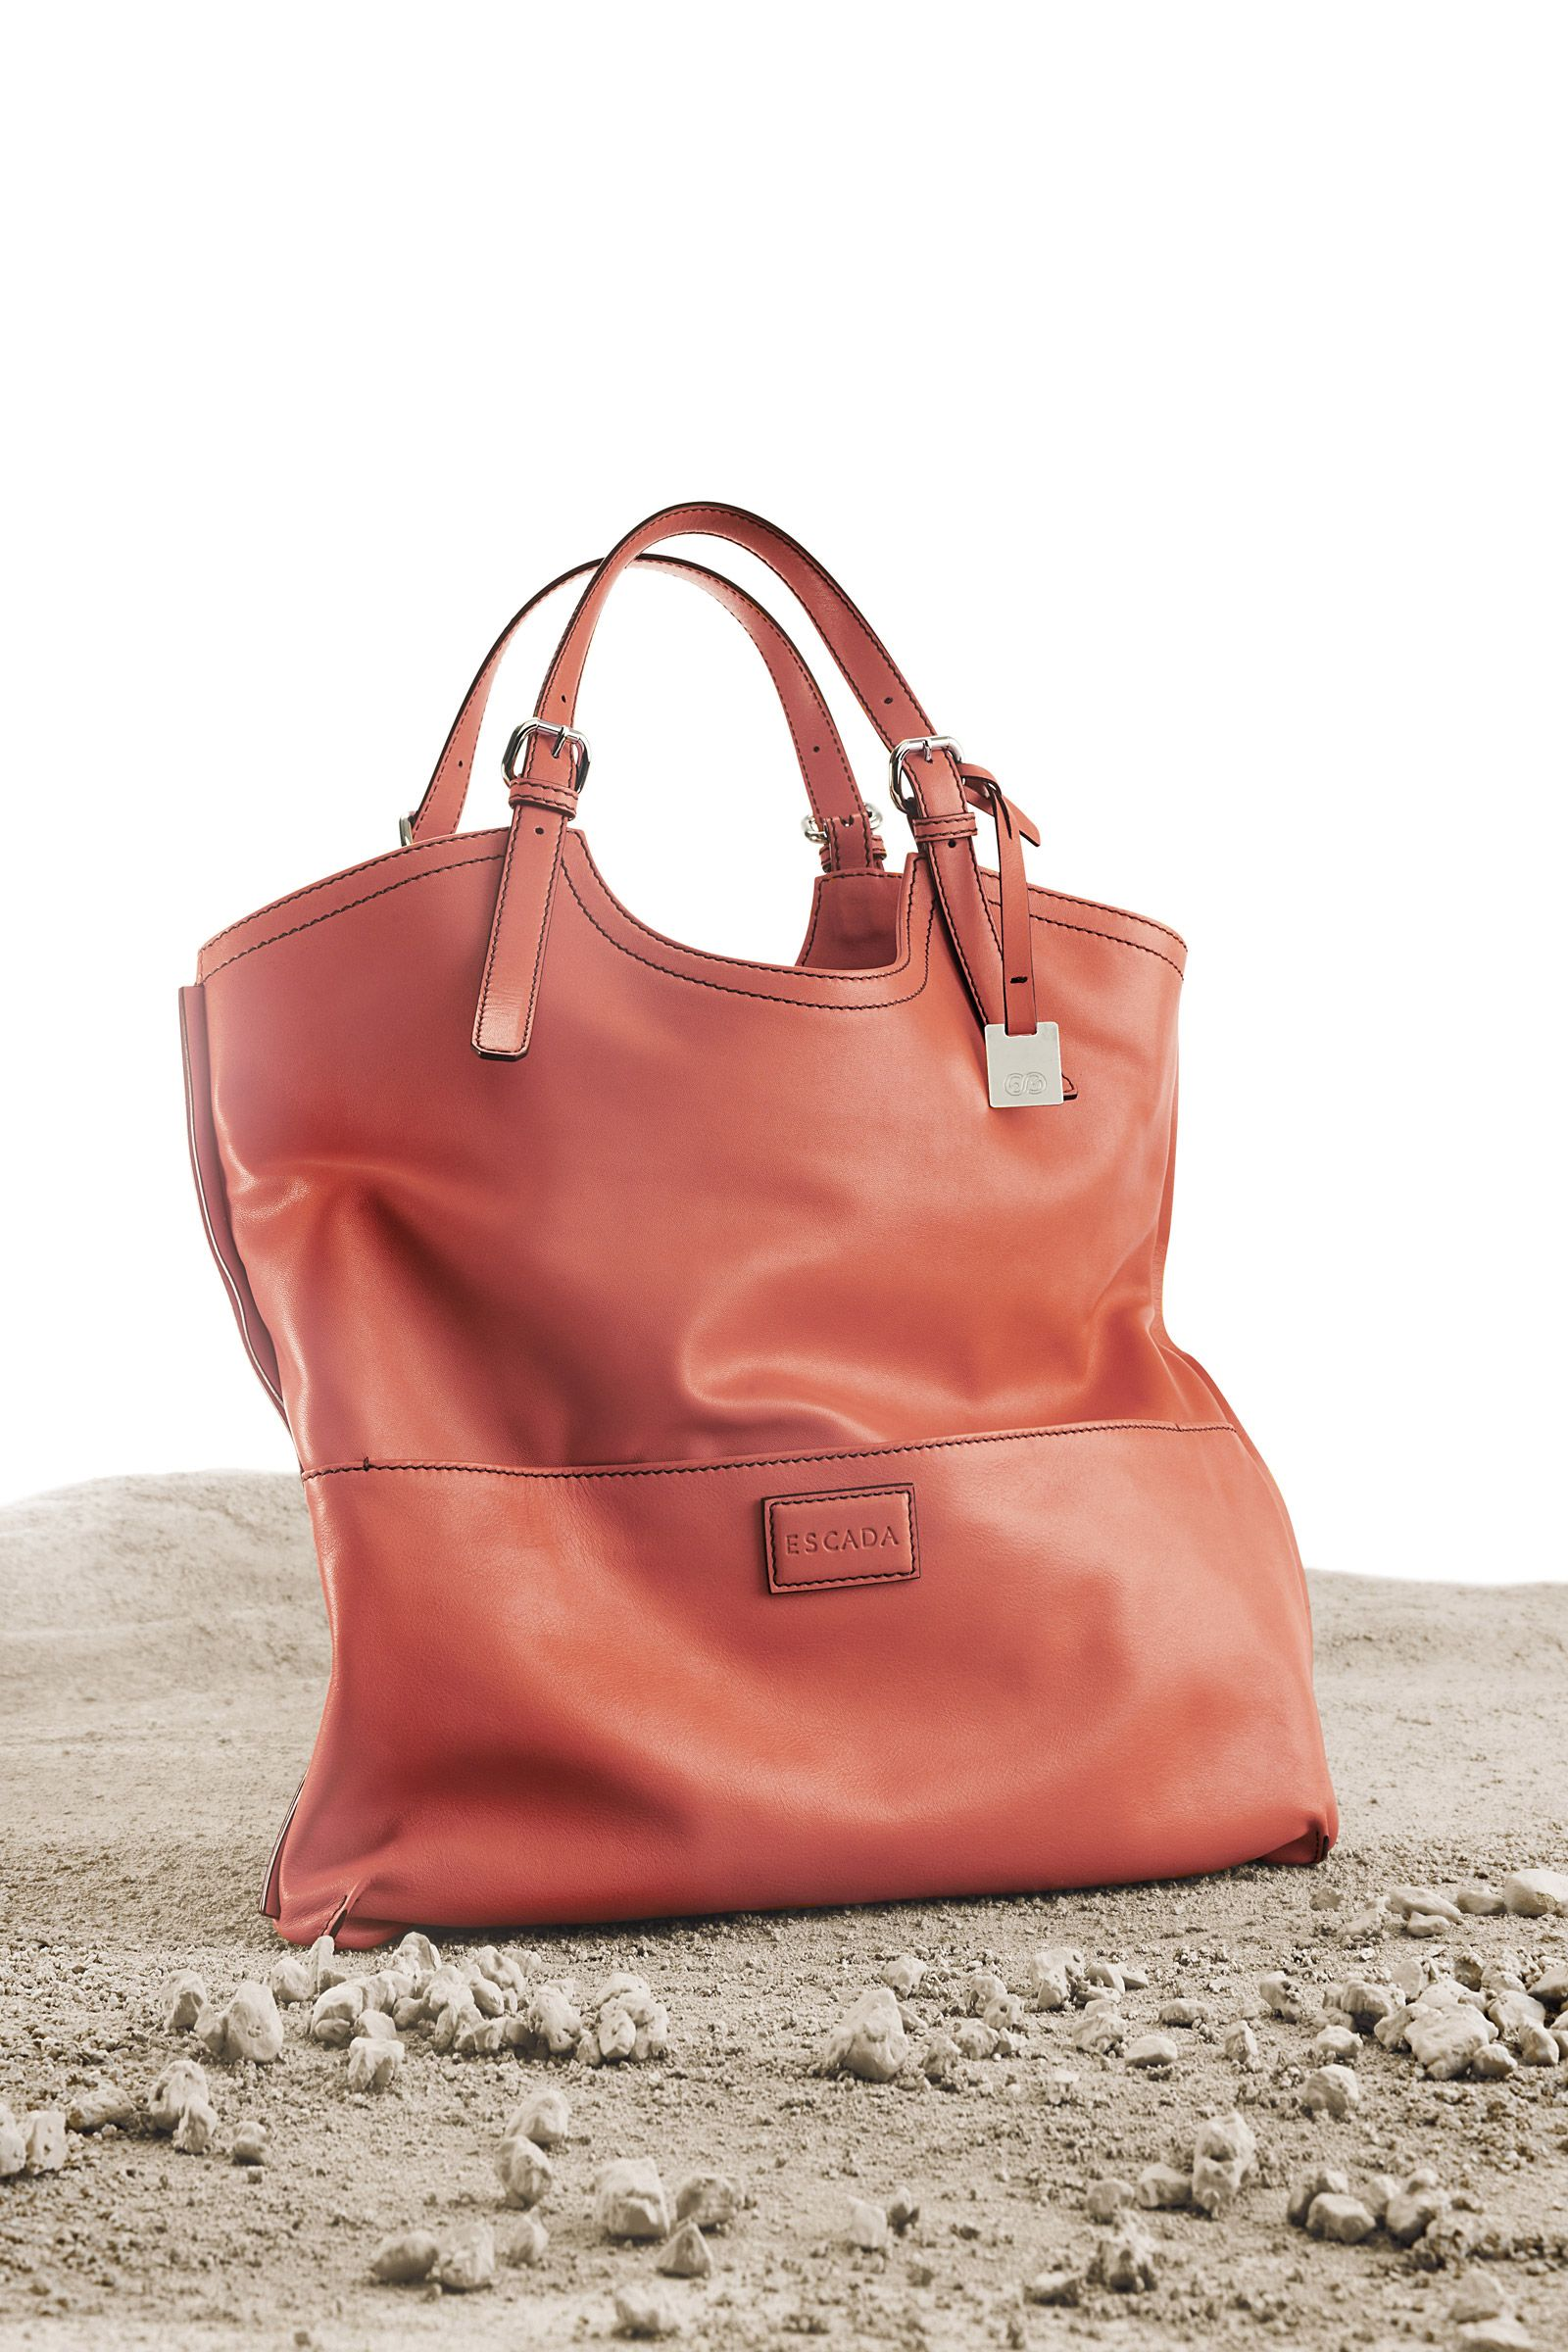 ESCADA SPORT Bags   ESCADA ✥ WILL LEATHER GOODS ✥ COURREGES ... f29661a7ea